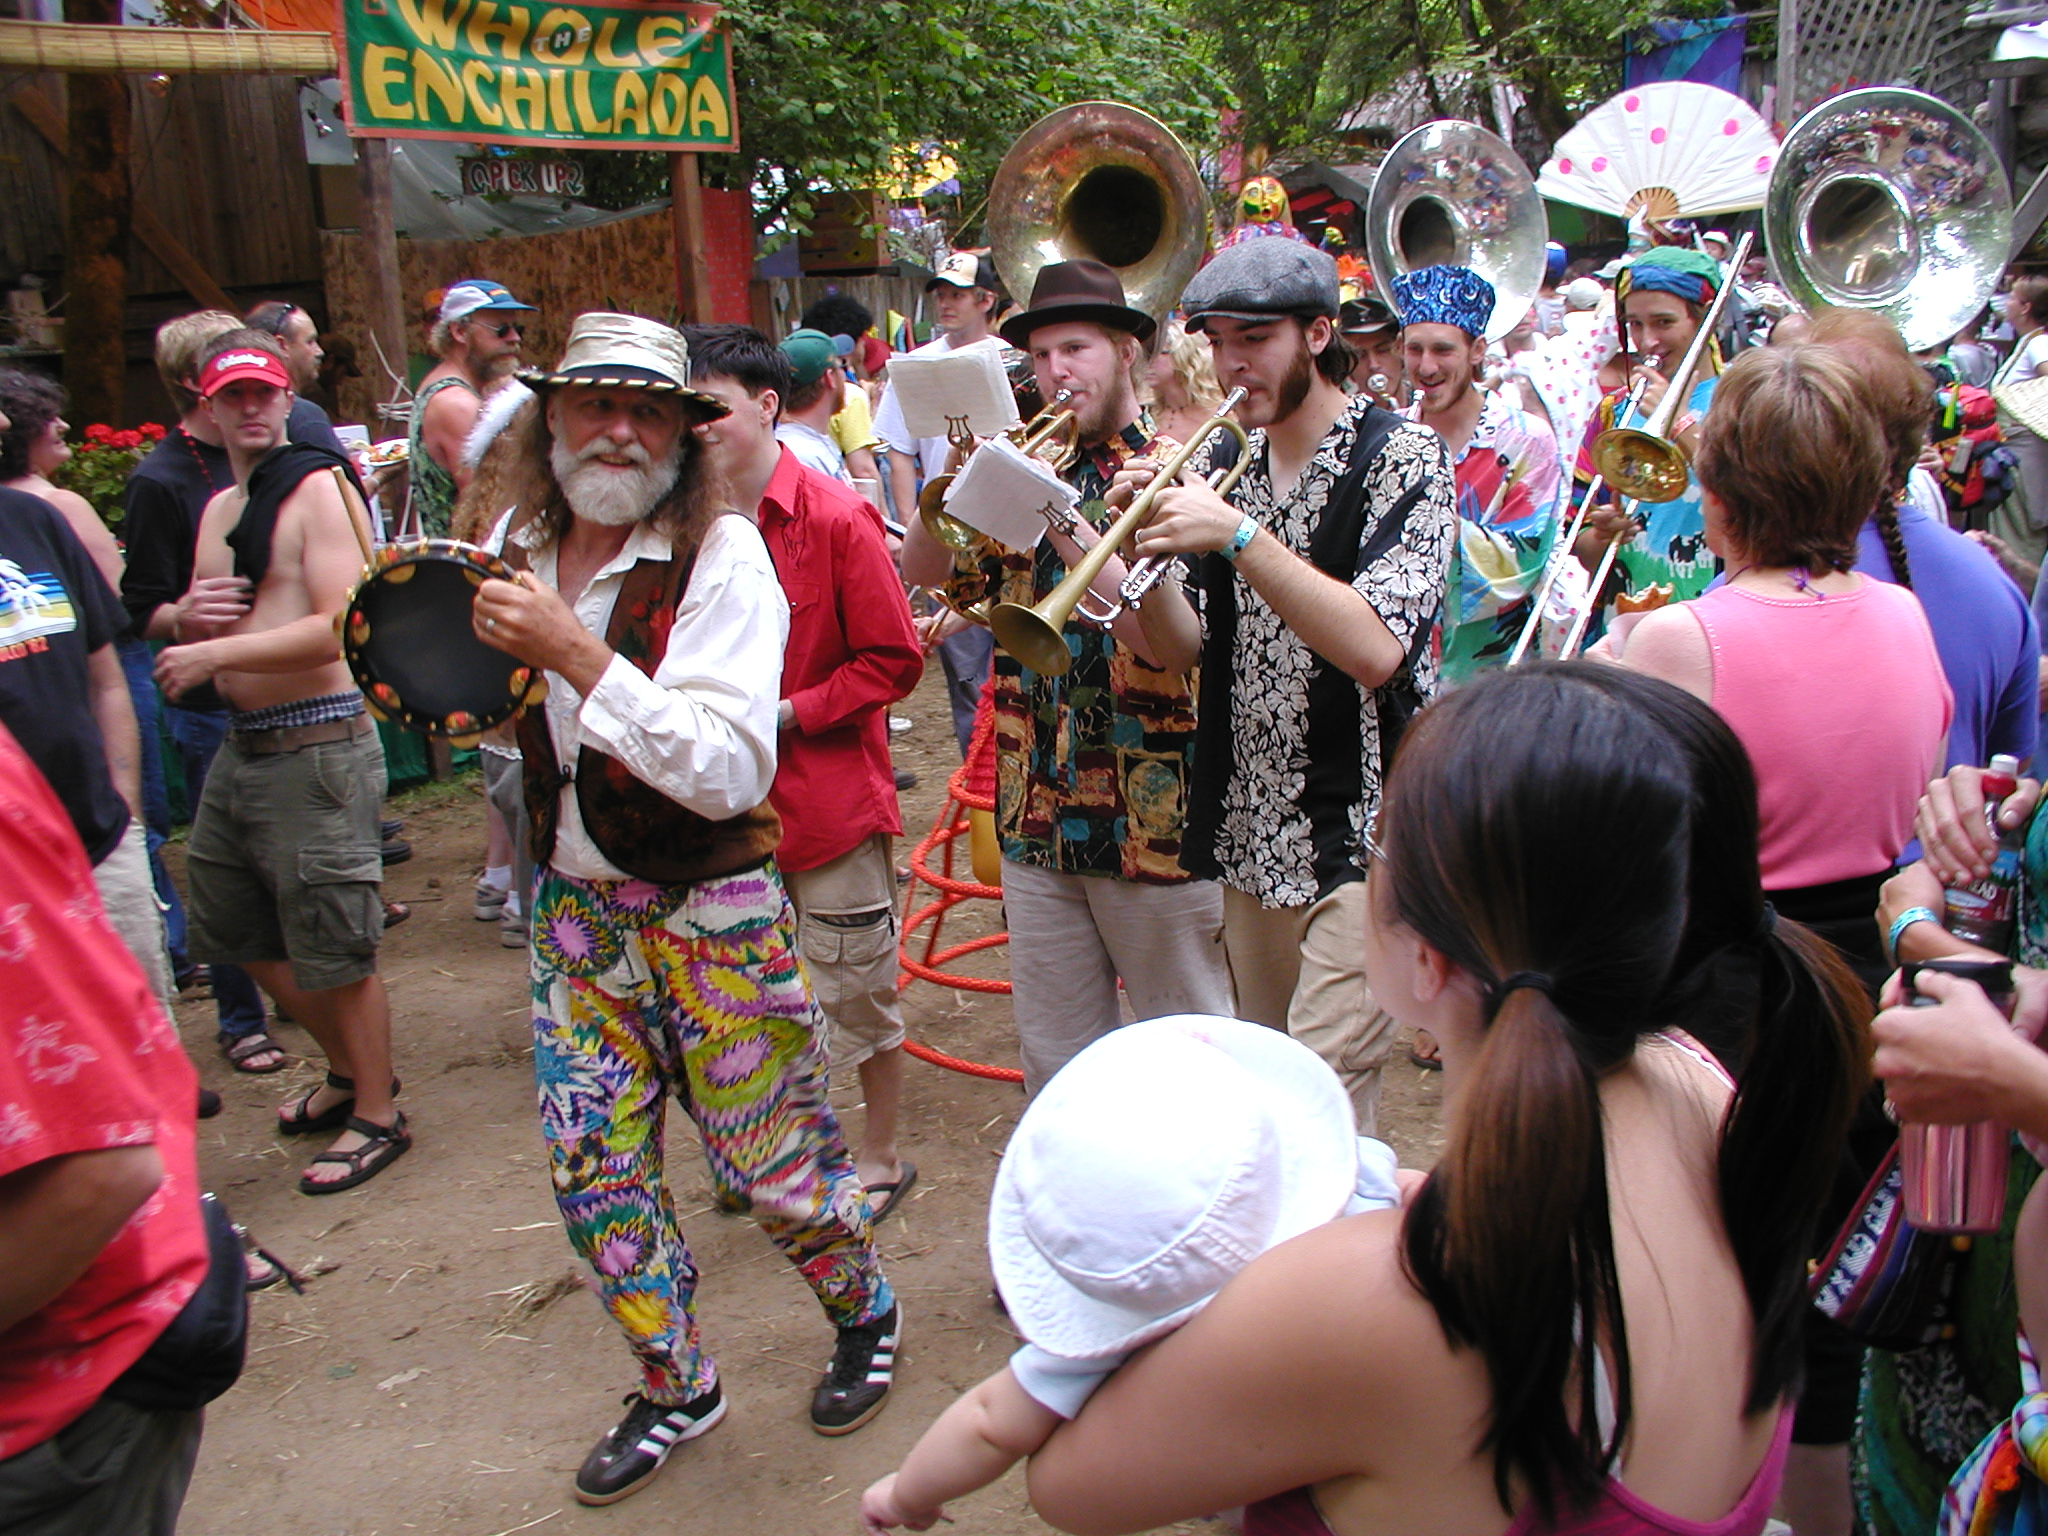 Oregon_Country_Fair_2005_Brass_Band_Parade.jpg